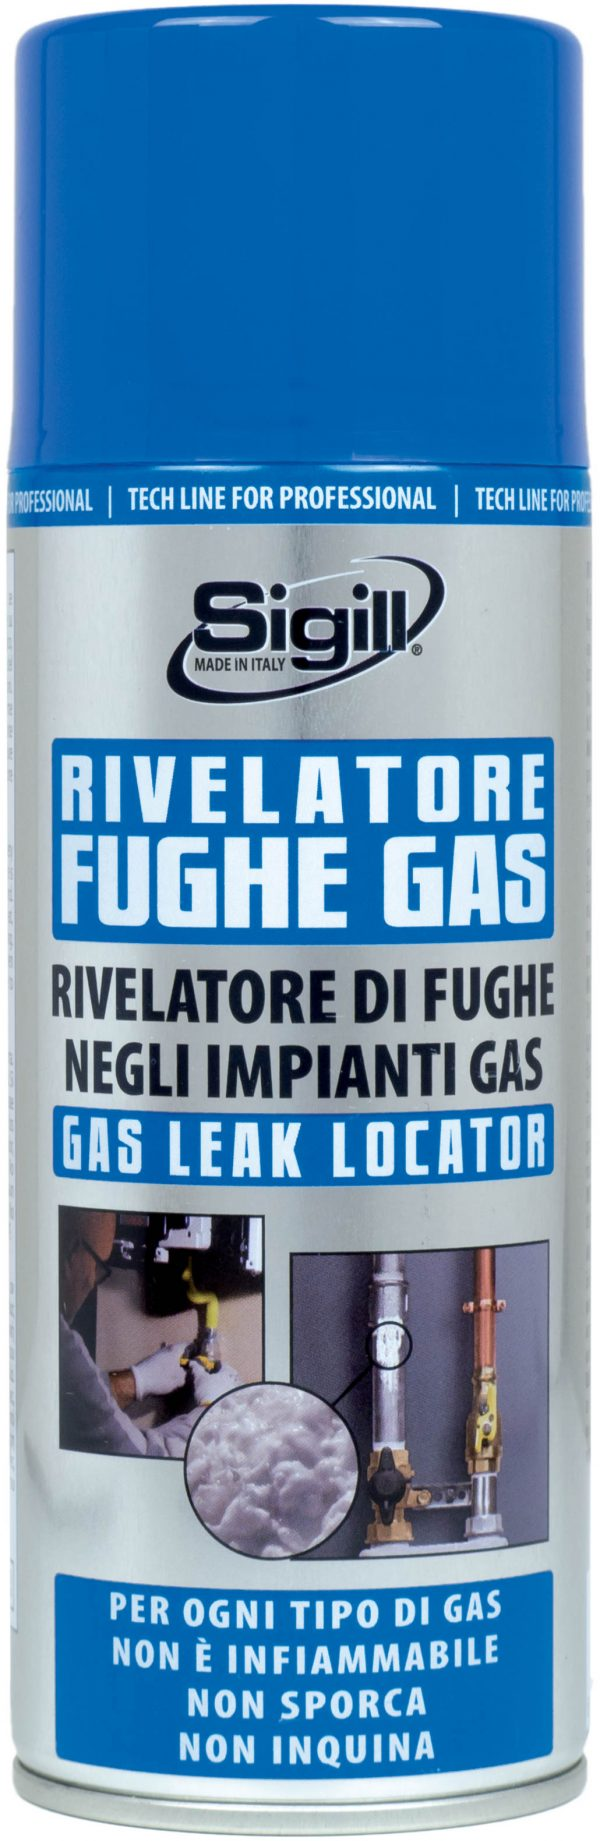 rivelatore gas, spray rivelatore fughe di gas